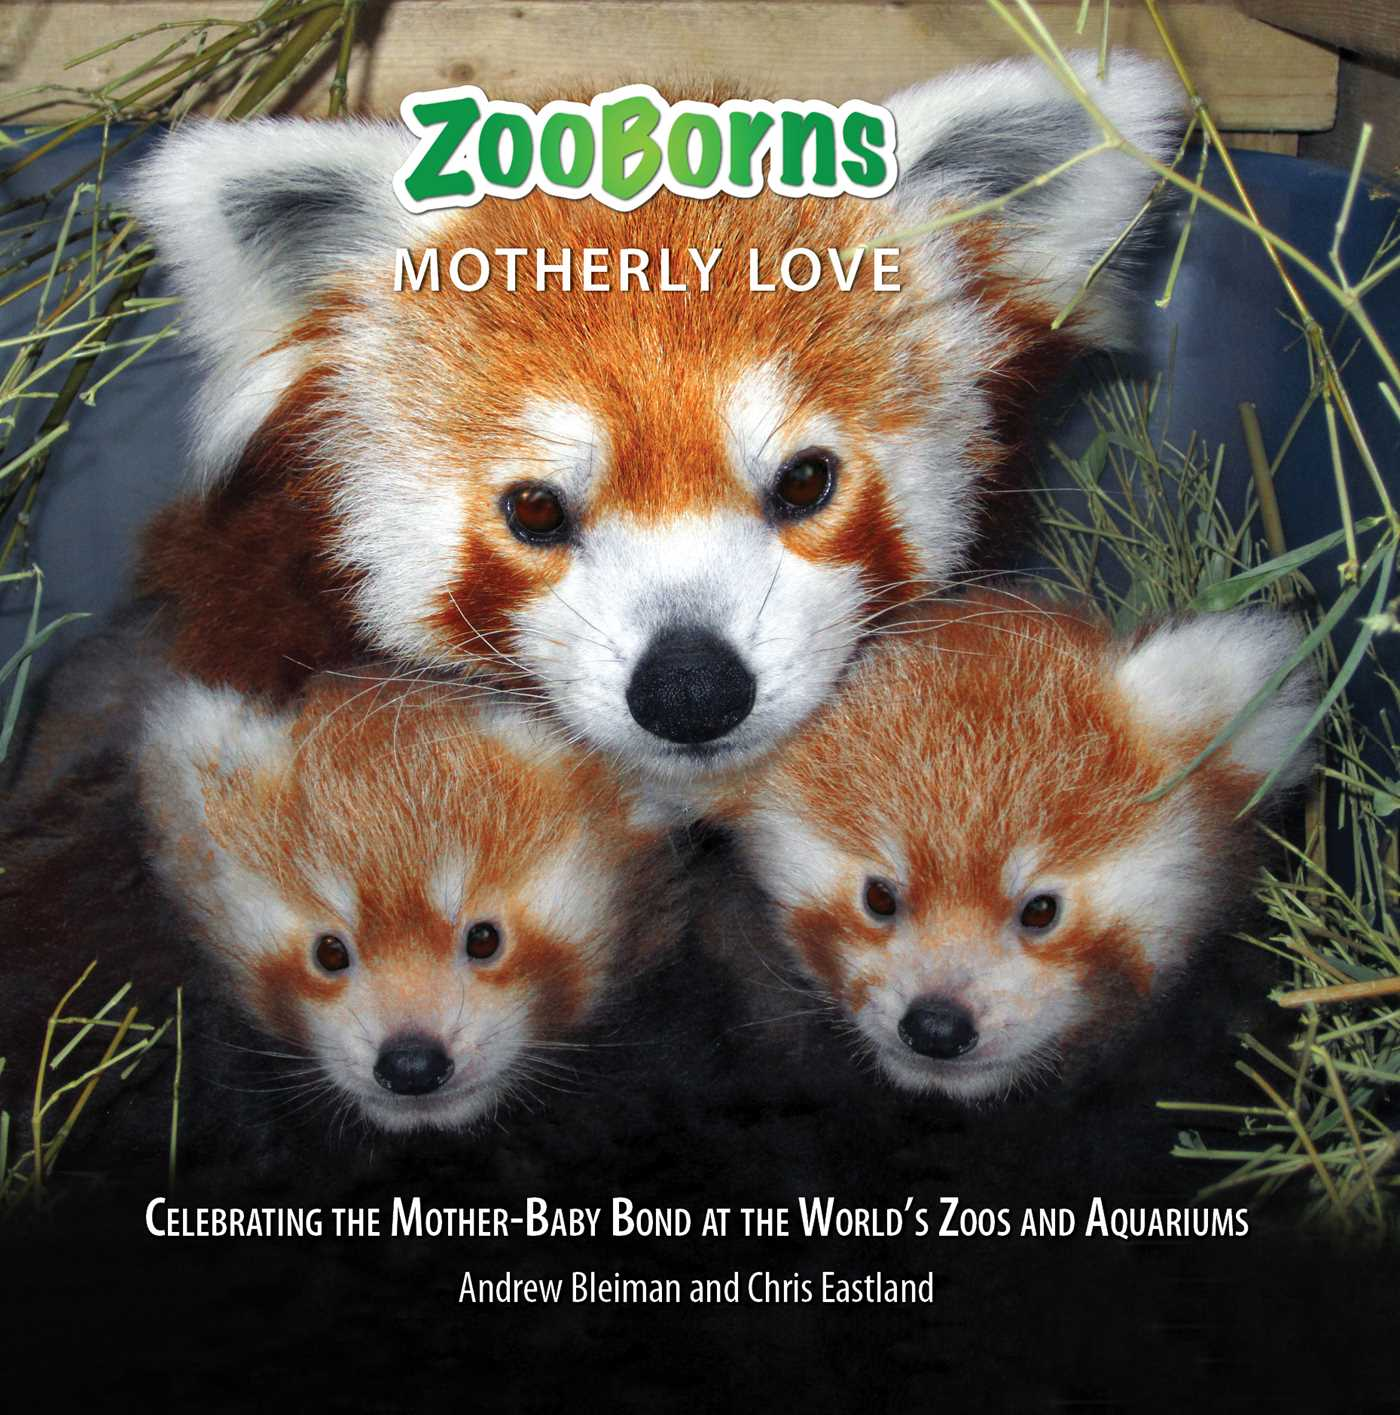 Zooborns-motherly-love-9781476791968_hr